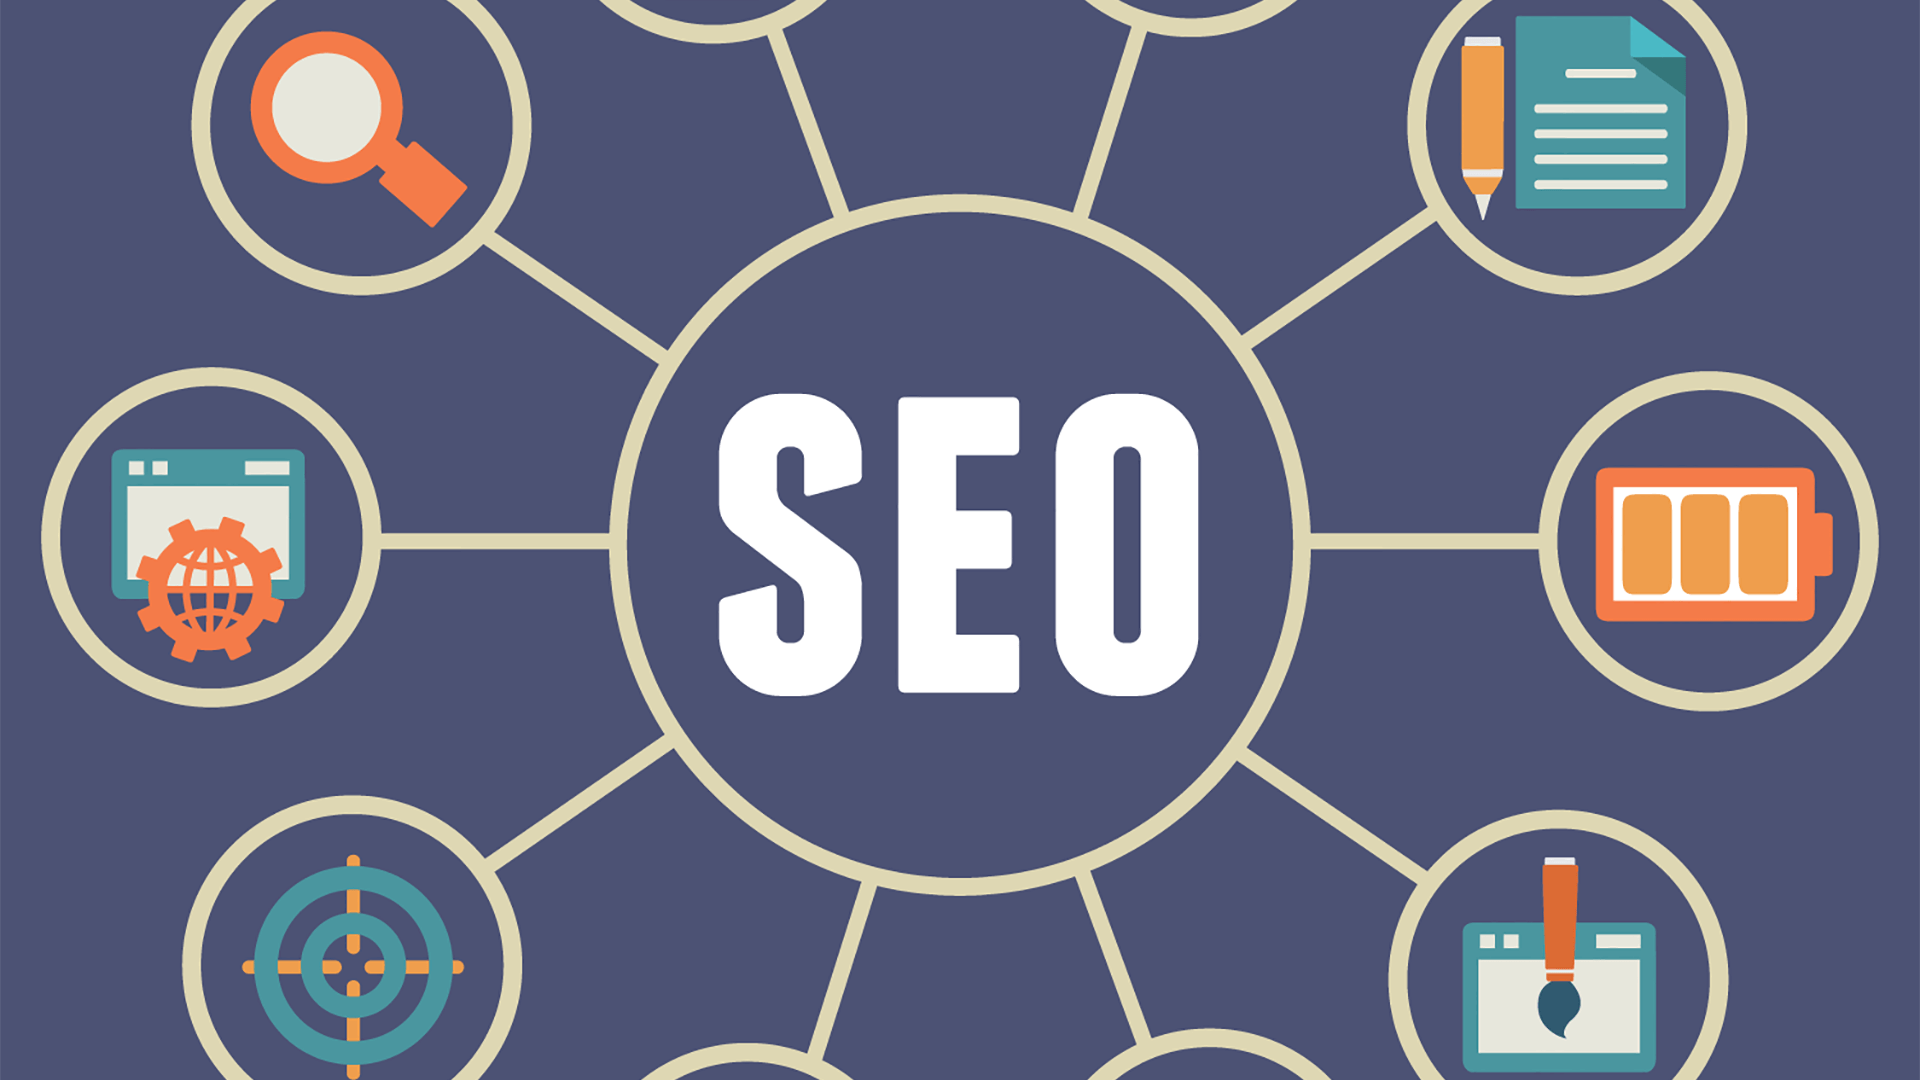 Does Good Web Hosting Help With SEO?